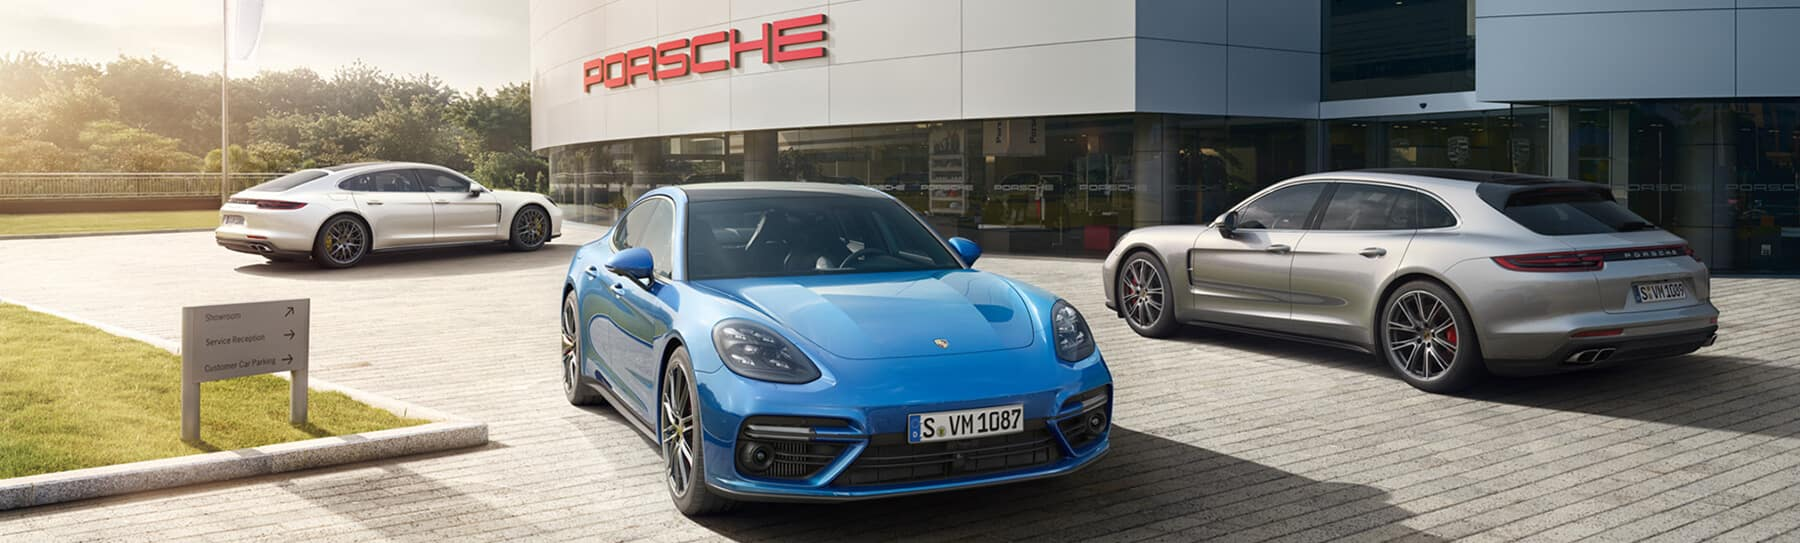 The New Panamera Banner Image